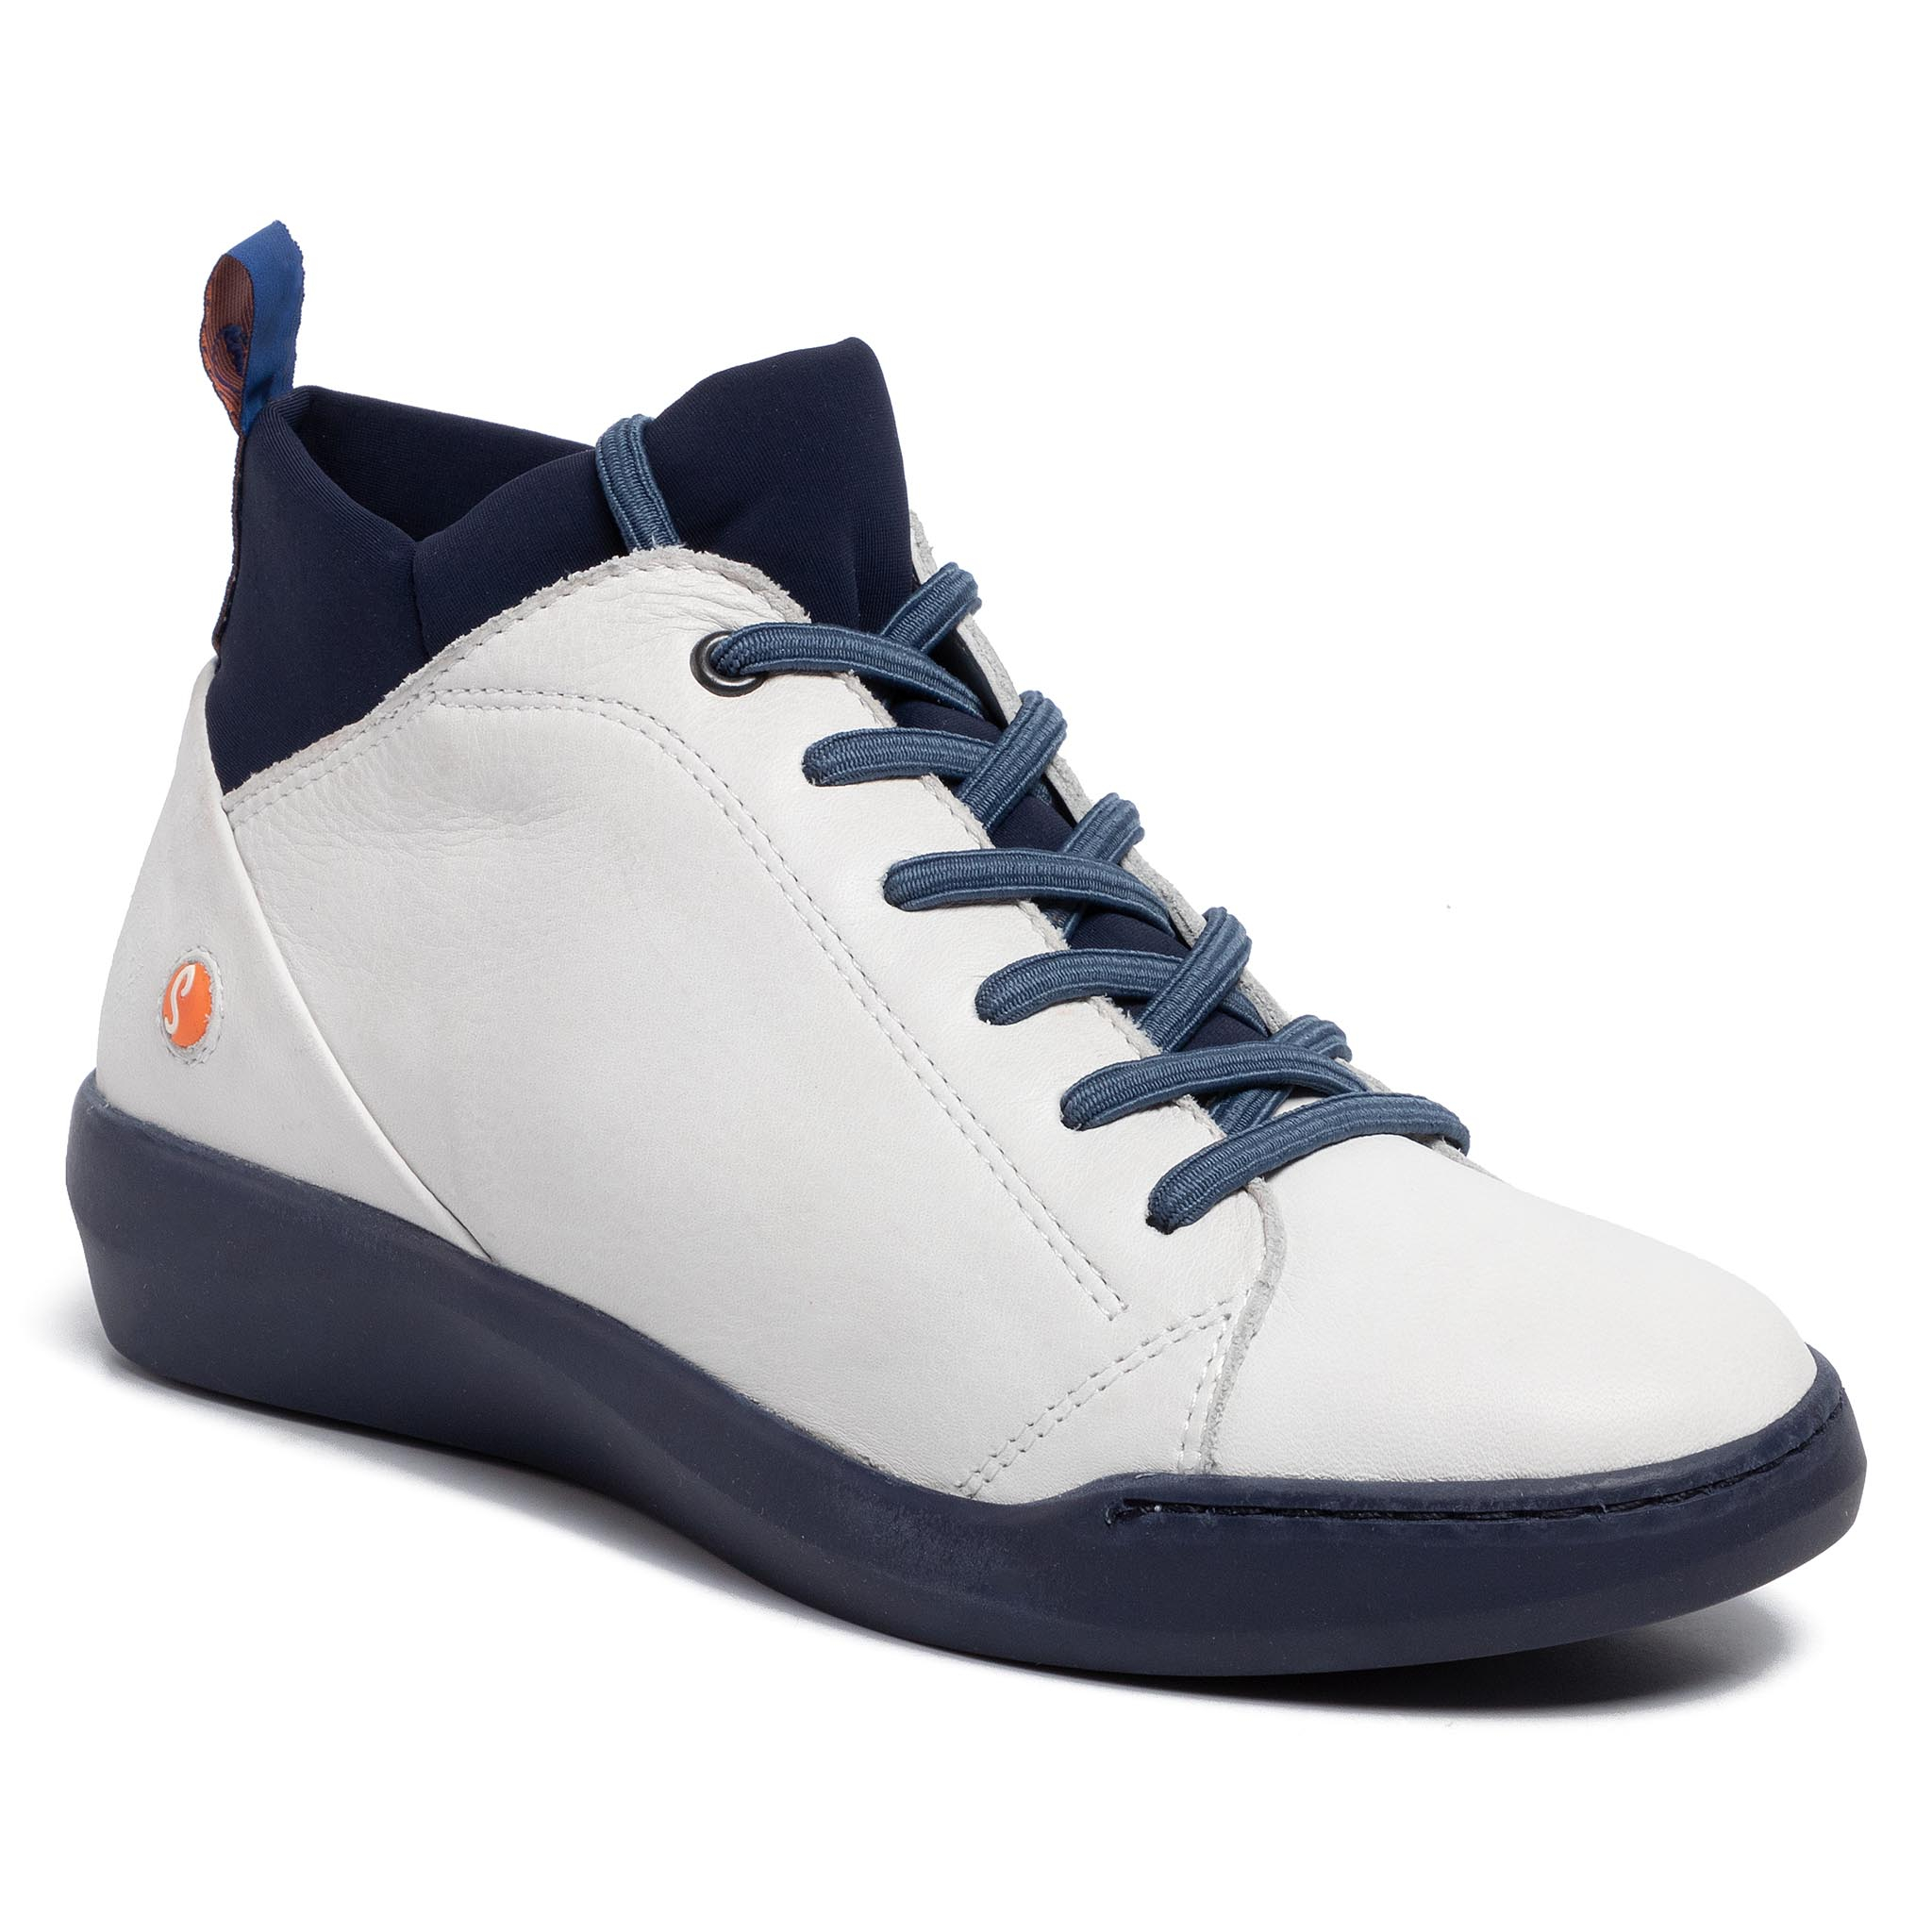 Sneakers SOFTINOS - Bielsof P900549007 White/Navy